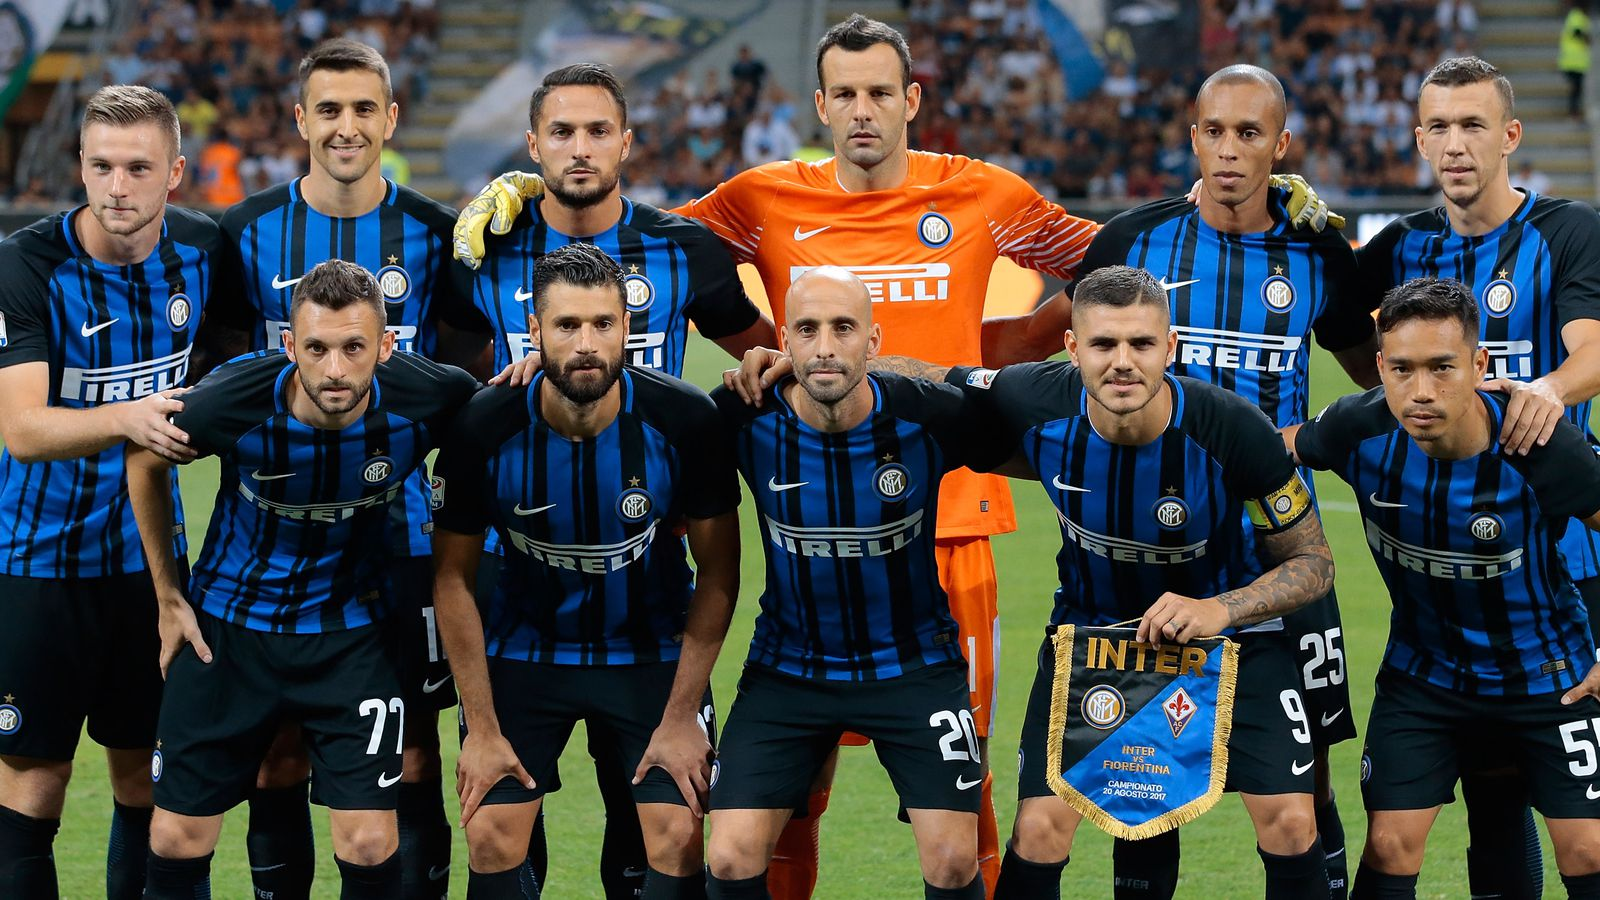 Inter 3 0 Fiorentina Final Thoughts From SoM Staff